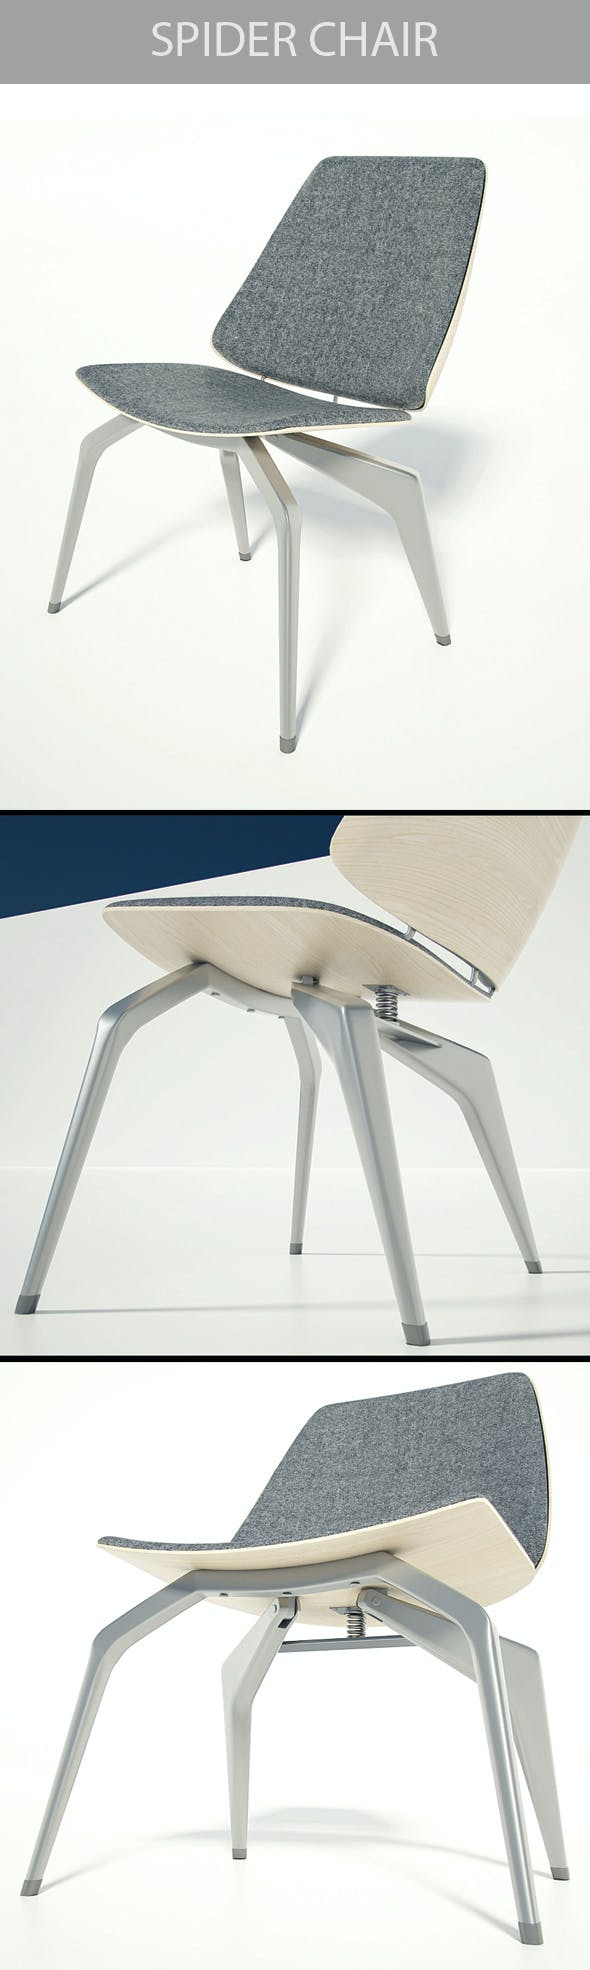 Spider Chair - 3DOcean Item for Sale